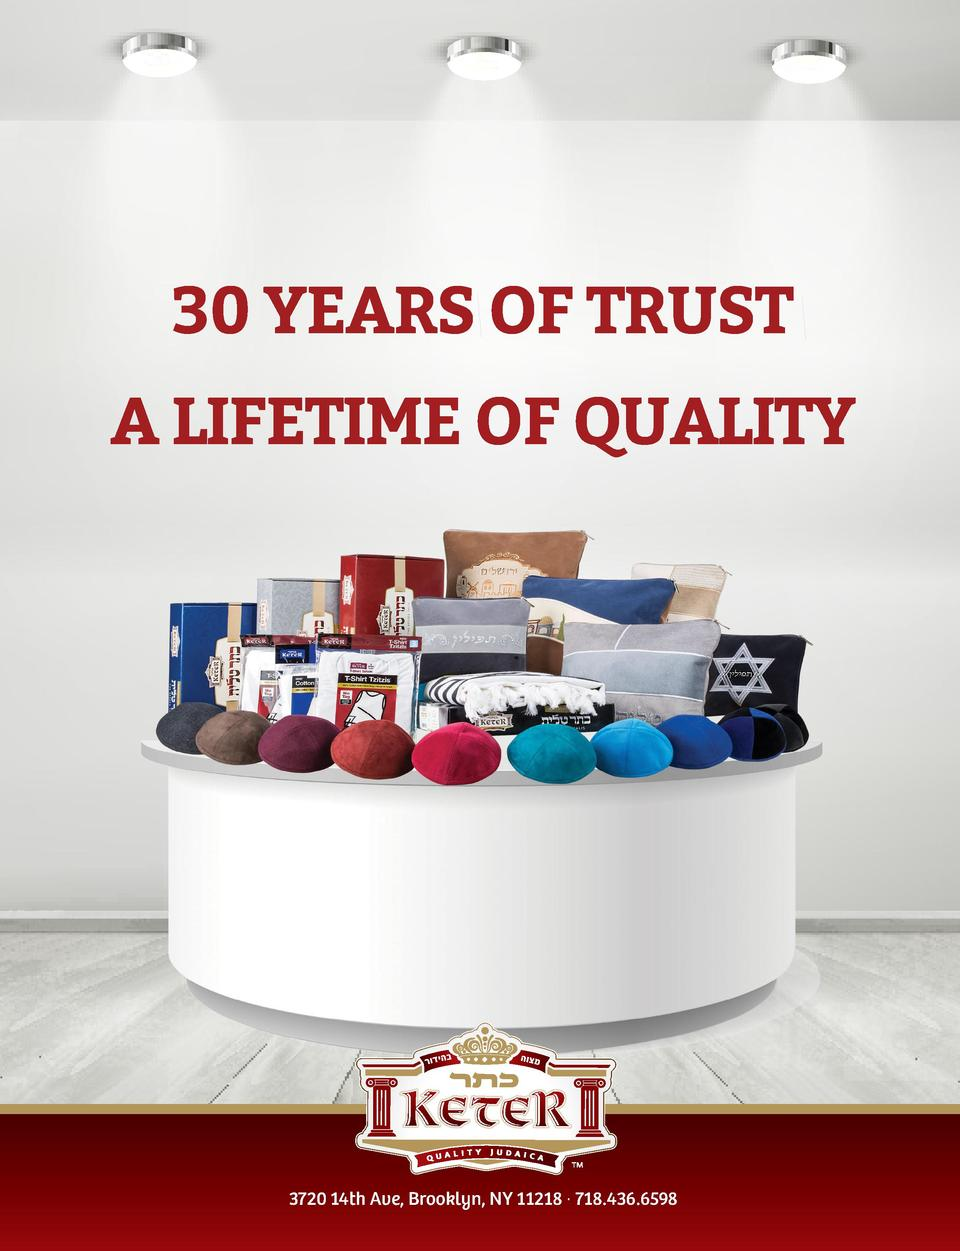 30 YEARS OF TRUST A LIFETIME OF QUALITY  3720 14th Ave, Brooklyn, NY 11218    718.436.6598 64   FYI Magazine